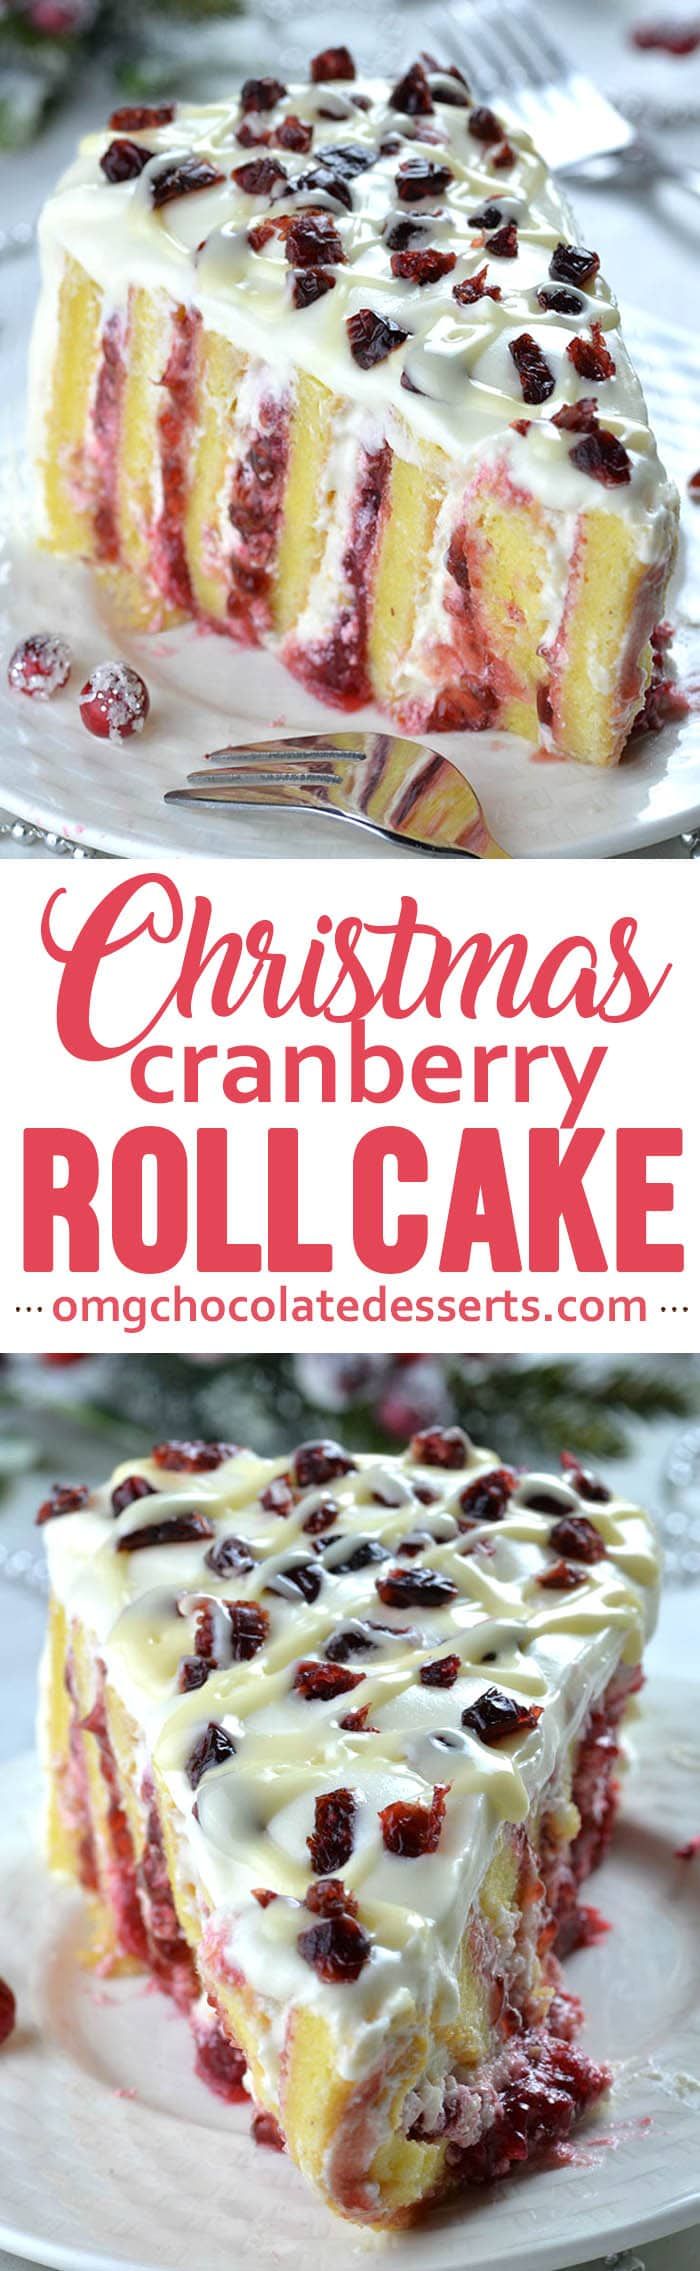 Cranberry Christmas Cake-It's delicious Christmas dessert and I can't think of a better way to enjoy the holidays than white chocolate-cranberry cake!